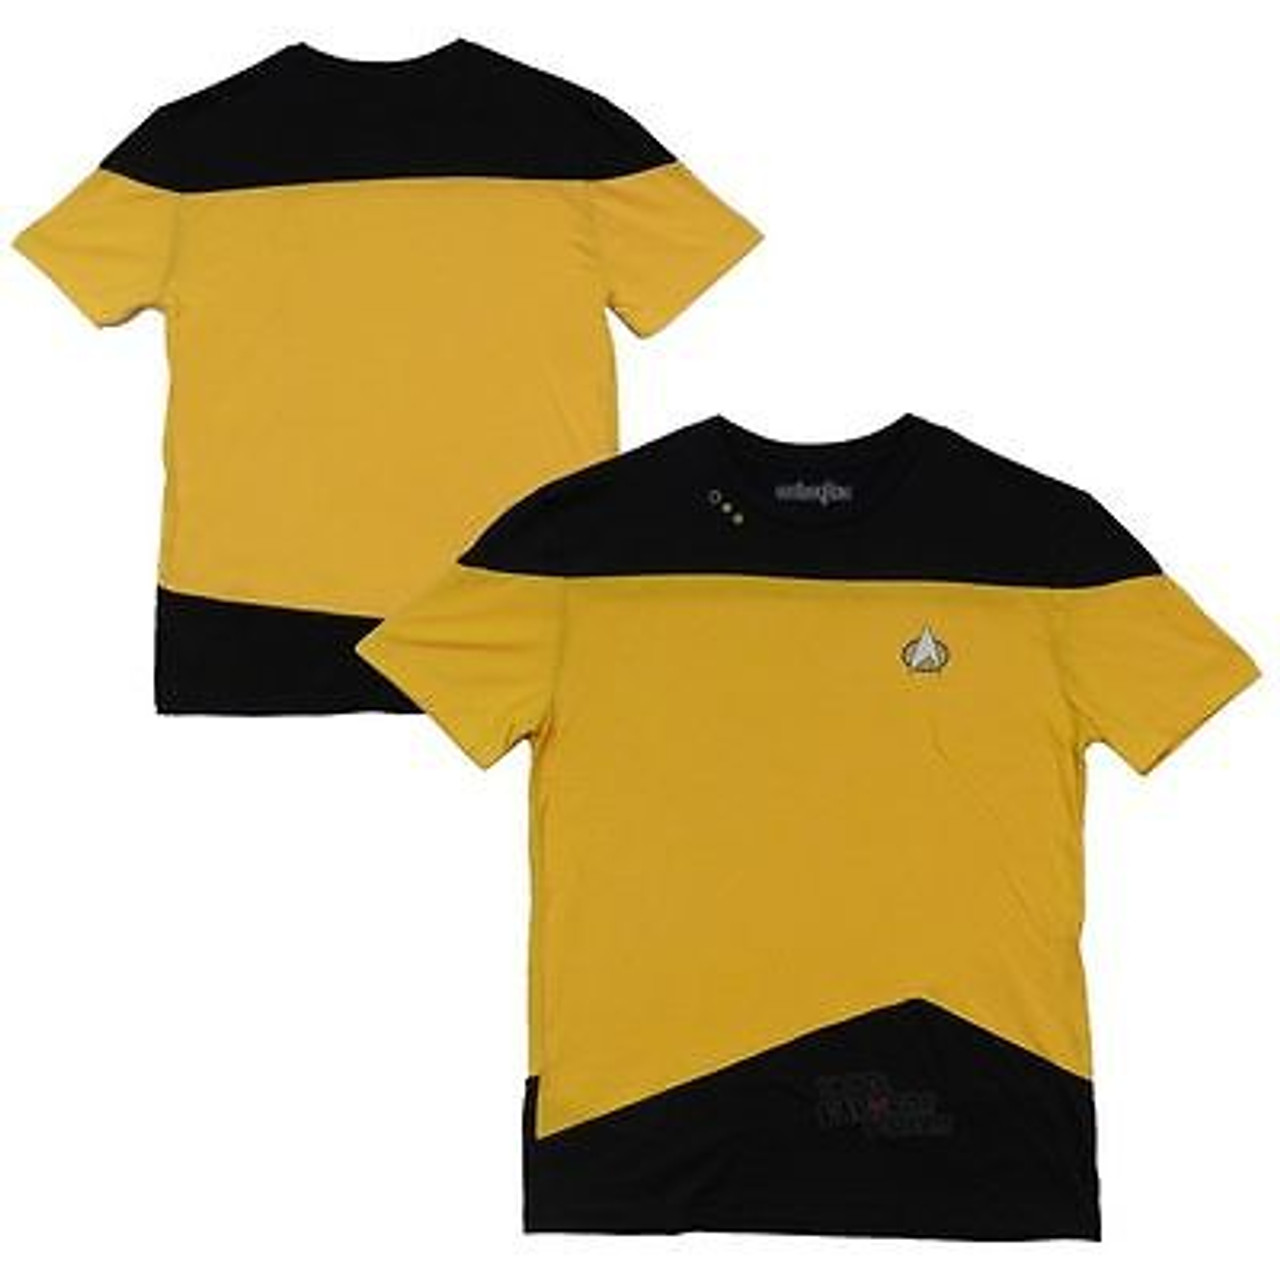 Star Trek The Next Generation TNG Command Cosplay Costume Yellow Shirt For Fans